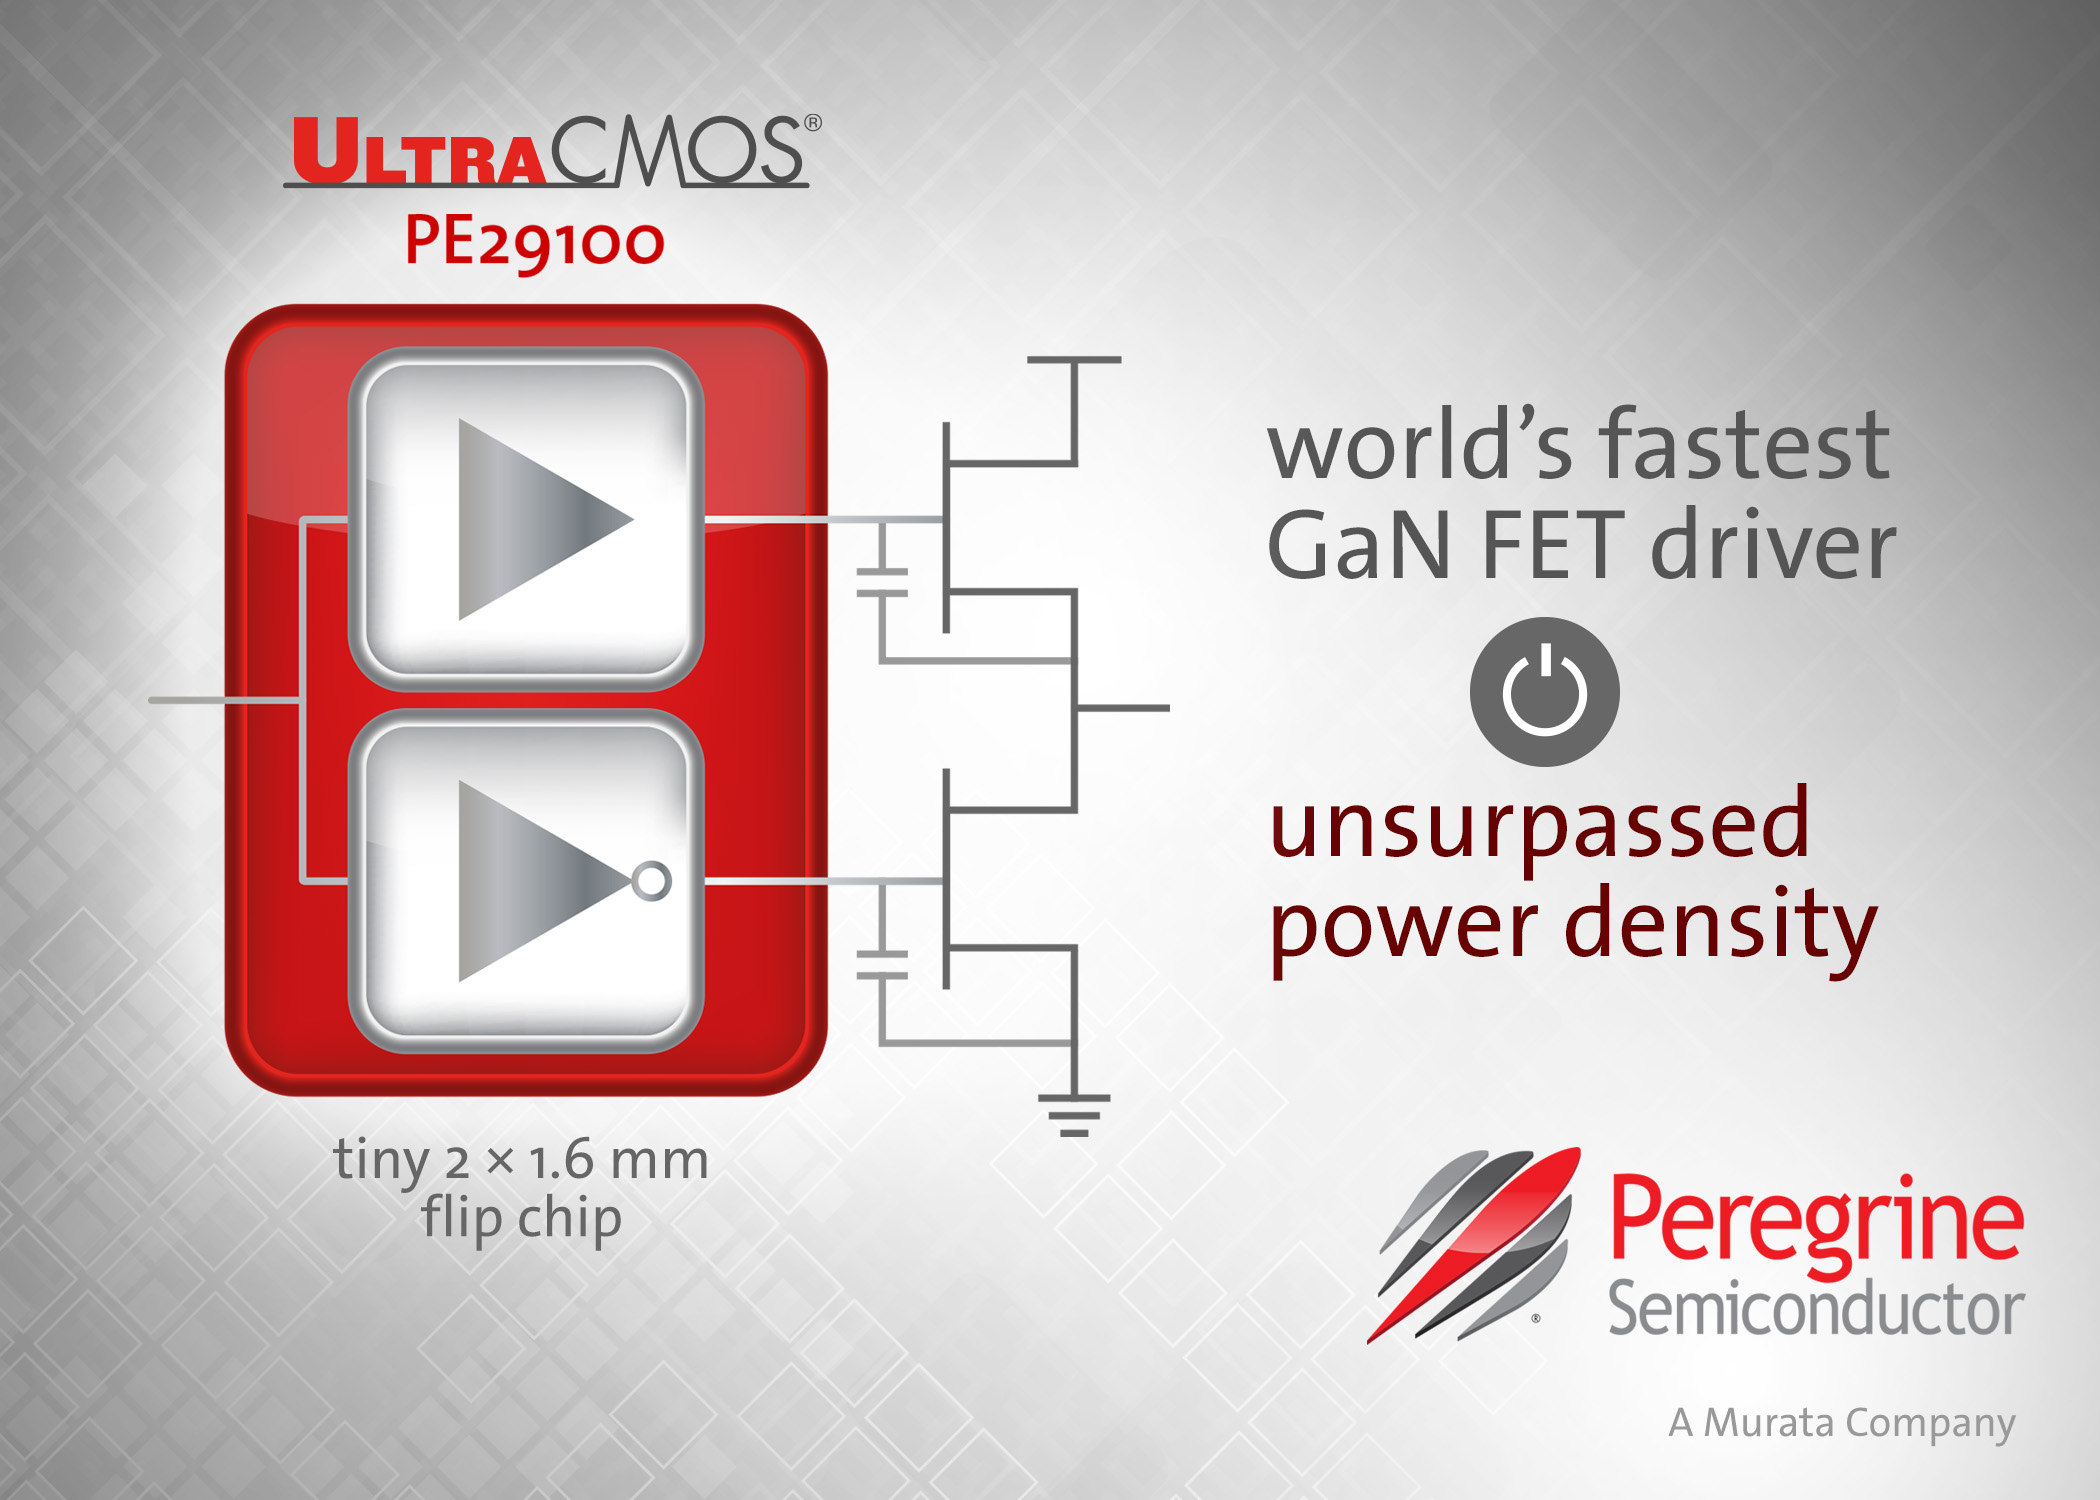 Peregrine Semiconductor Unveils The Worlds Fastest Gan Fet Driver Touch Switch Using